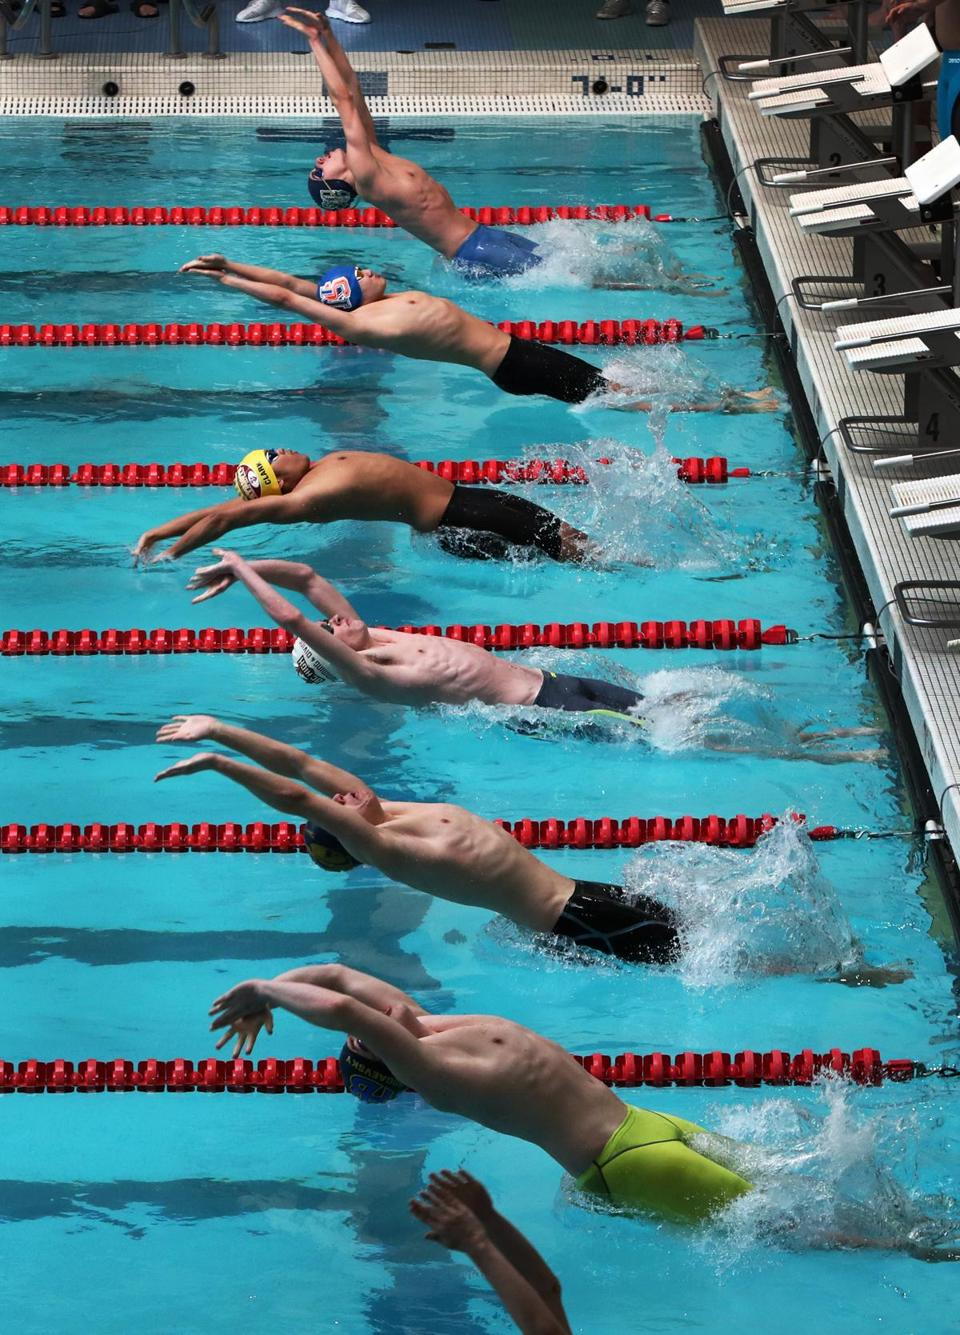 2-17-19 Boston, MA: Participants in a heat of the 200 Yard Medley Relay are pictured as they begin the race during the State Division One Boy's Swimming and Diving Championships held at Boston University. (Jim Davis /Globe Staff)